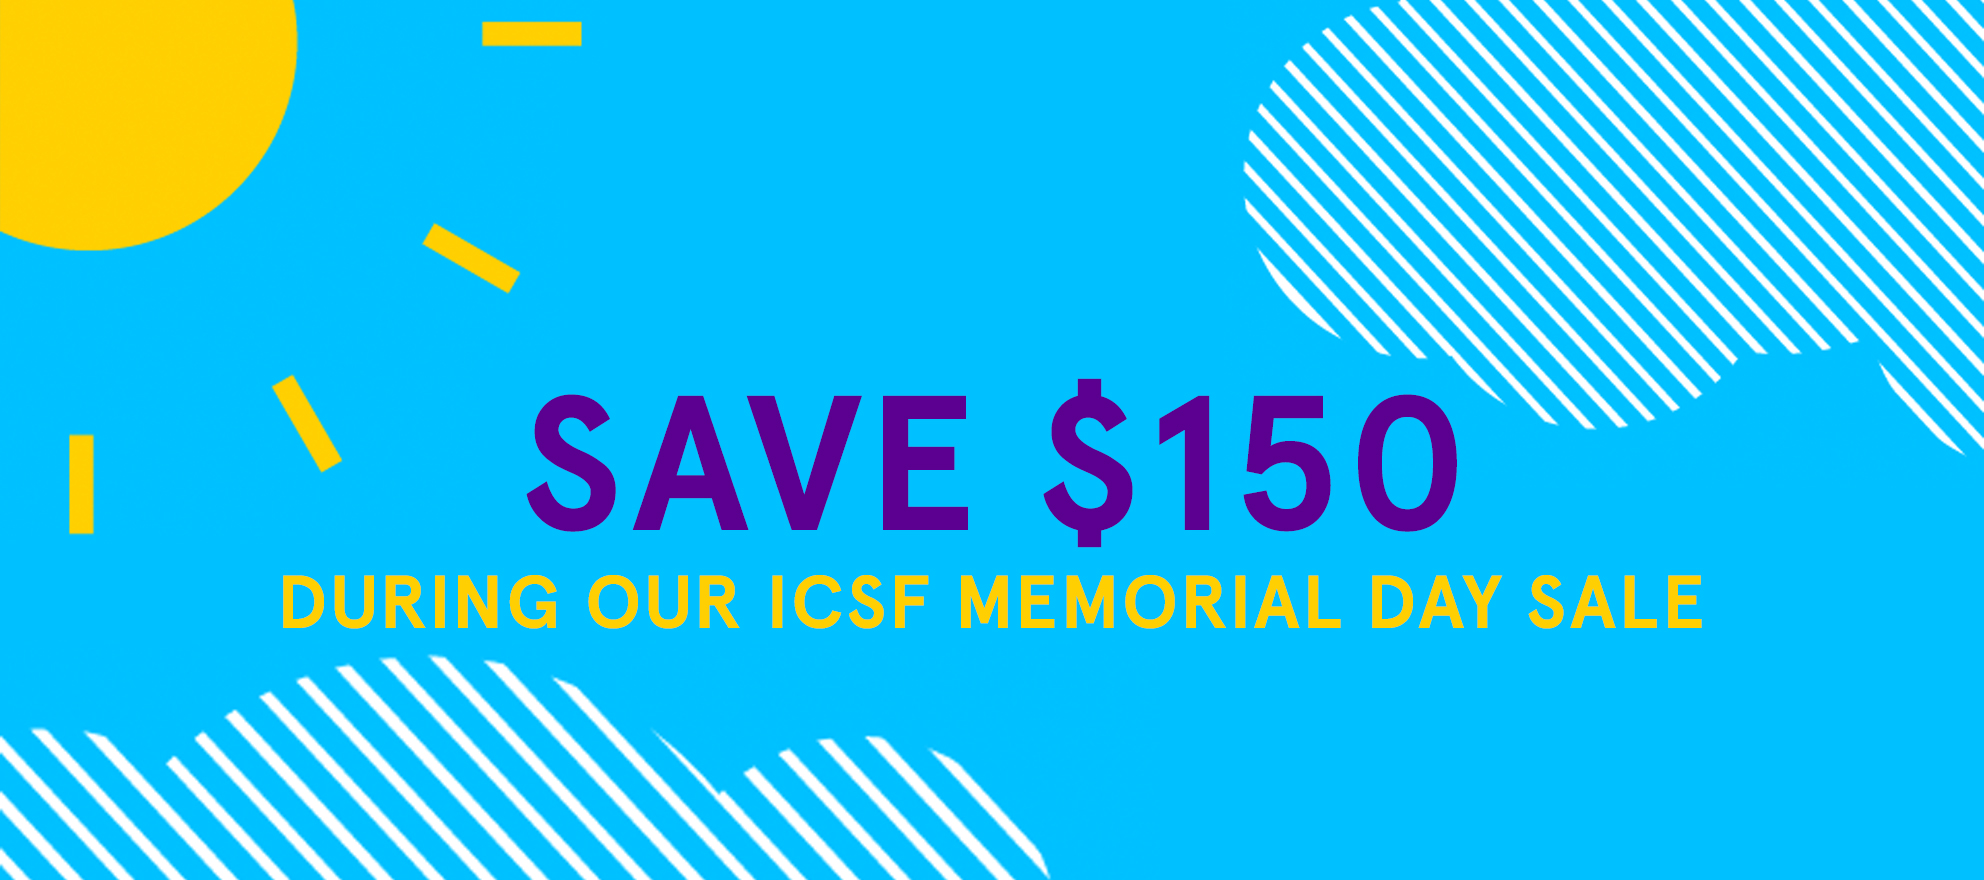 Save $150 during our ICSF Memorial Day sale